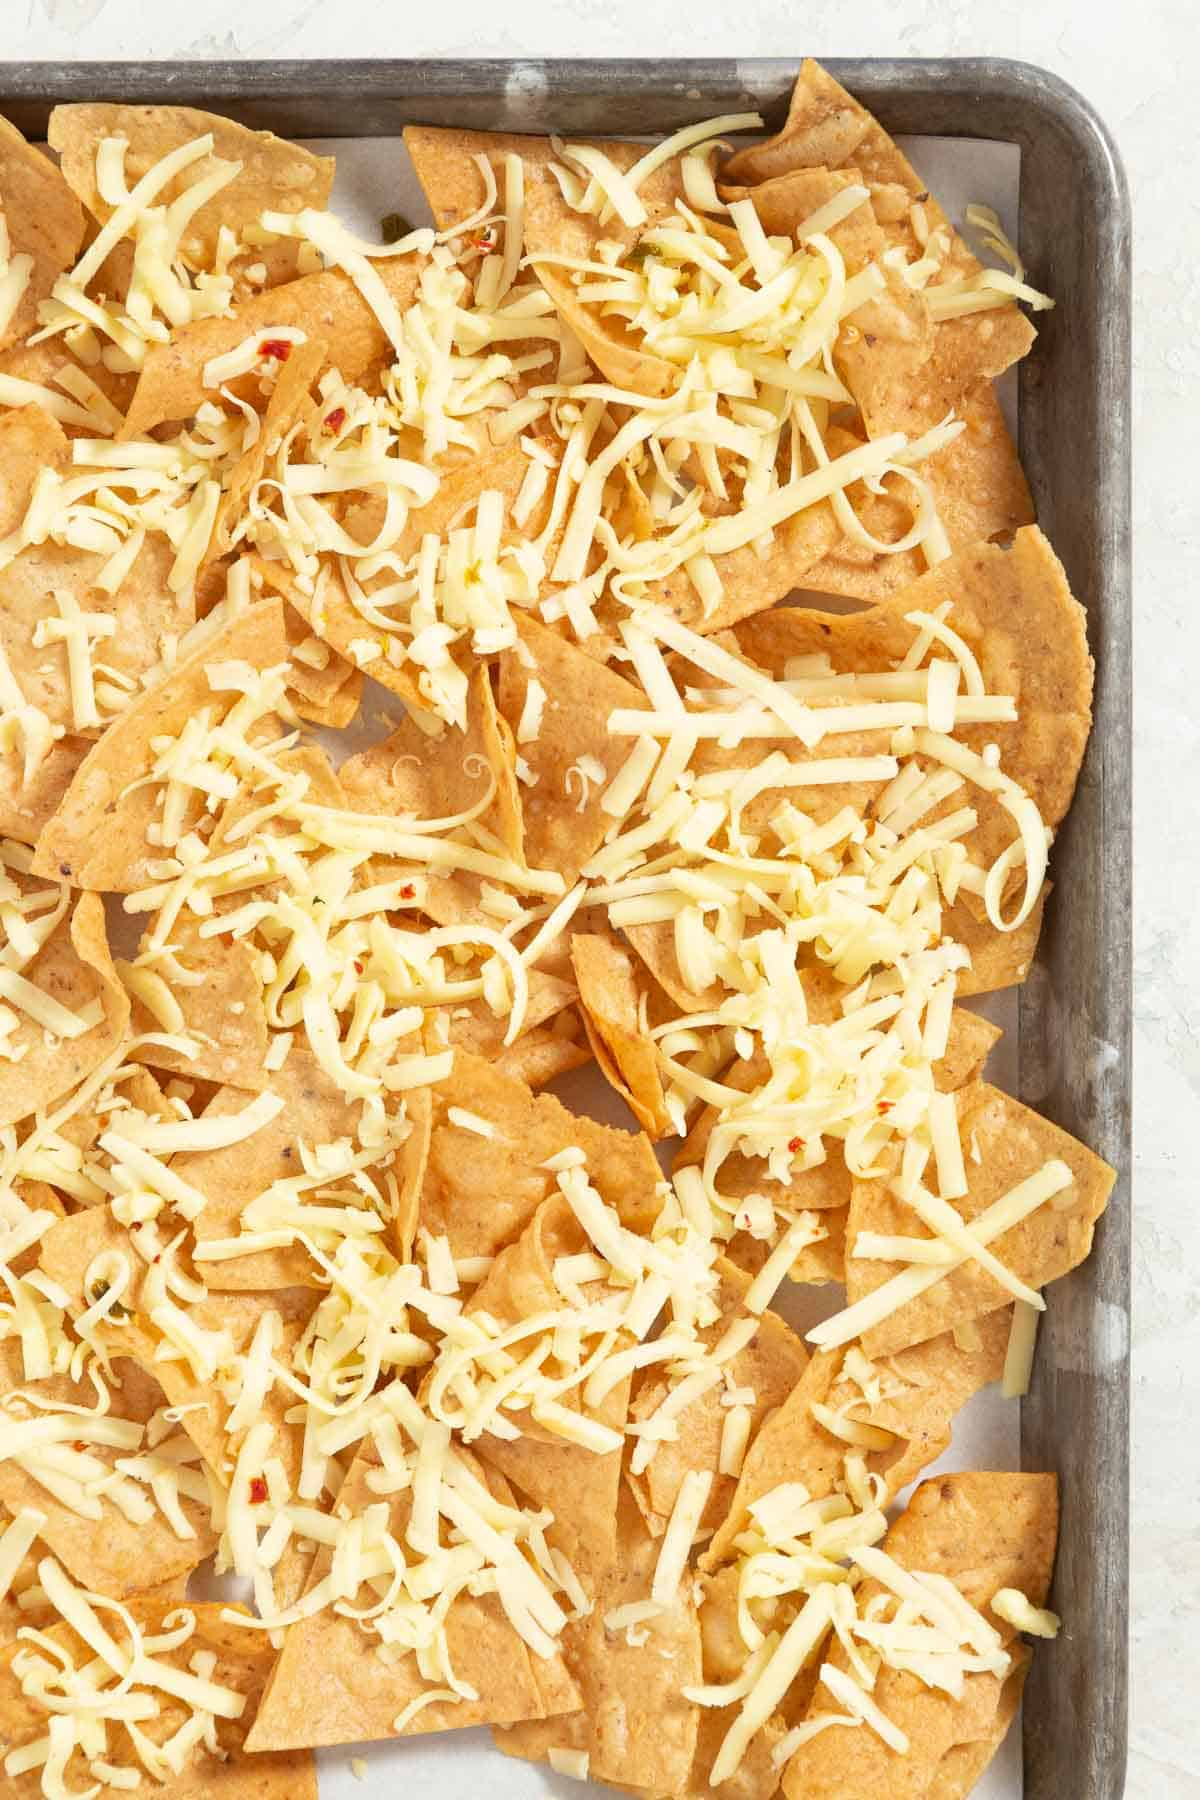 Shredded cheese on top of nacho cheese on a sheet pan